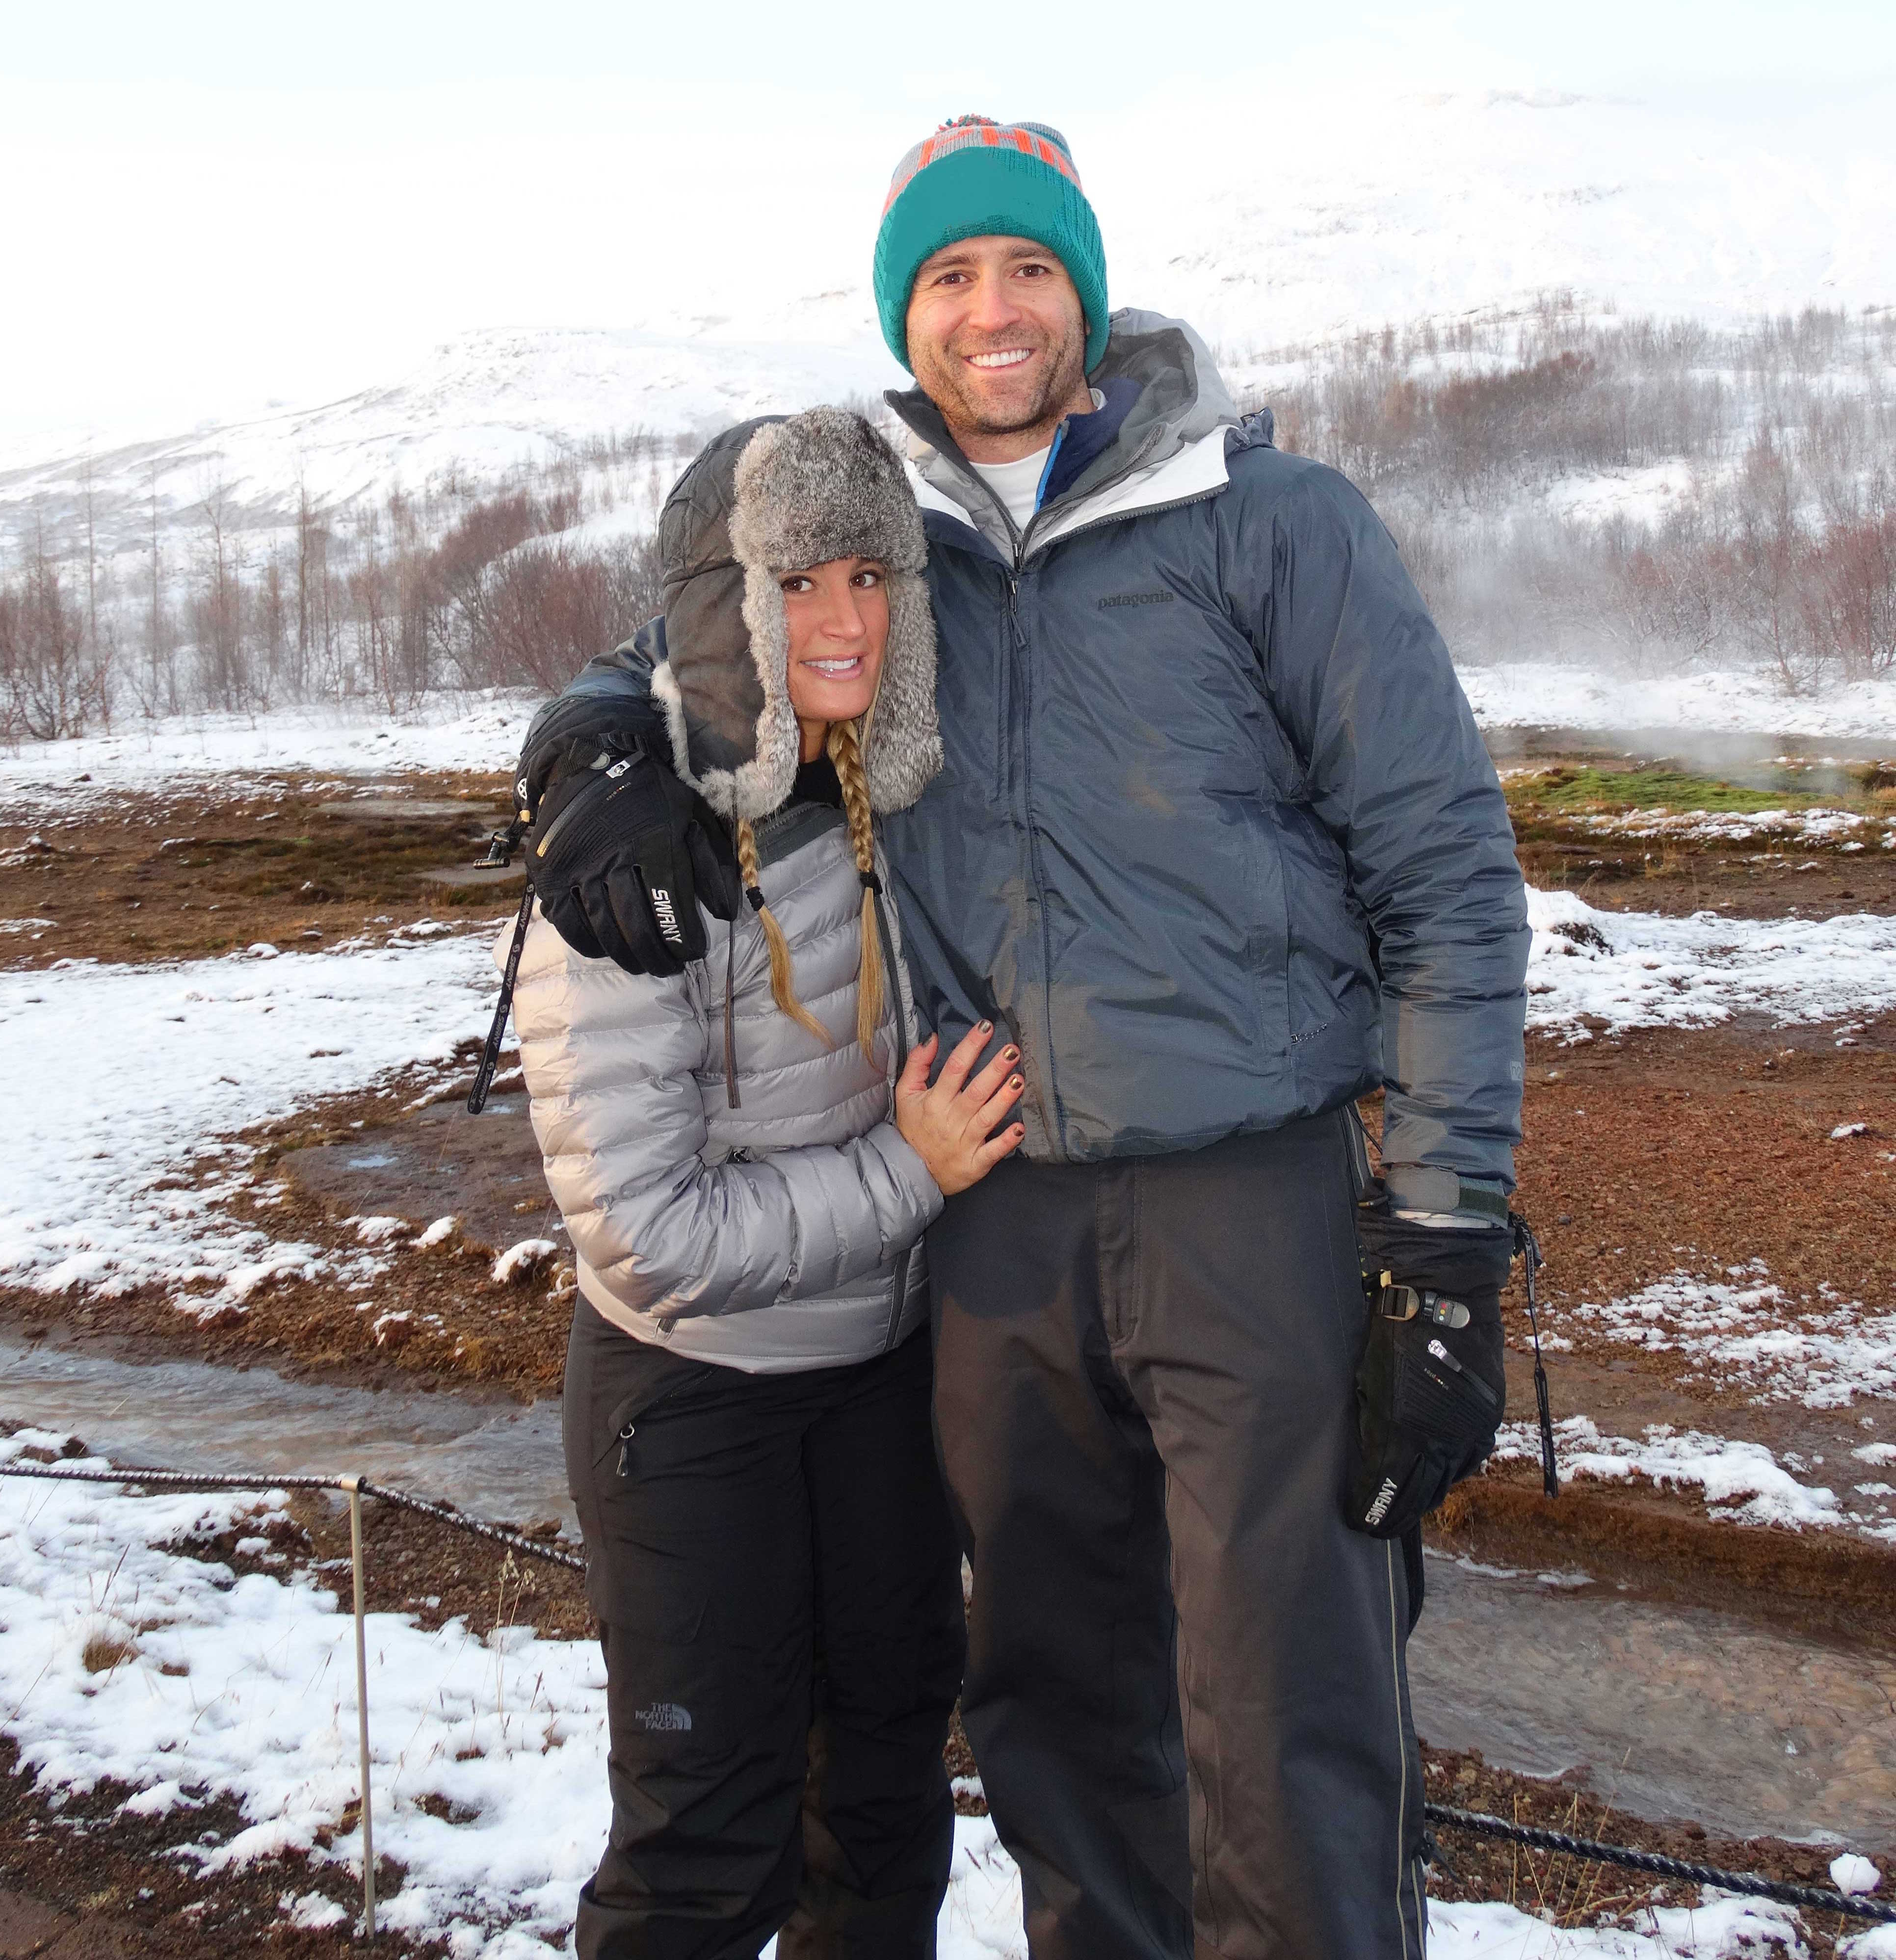 Whitney Spielfogel in Iceland with husband